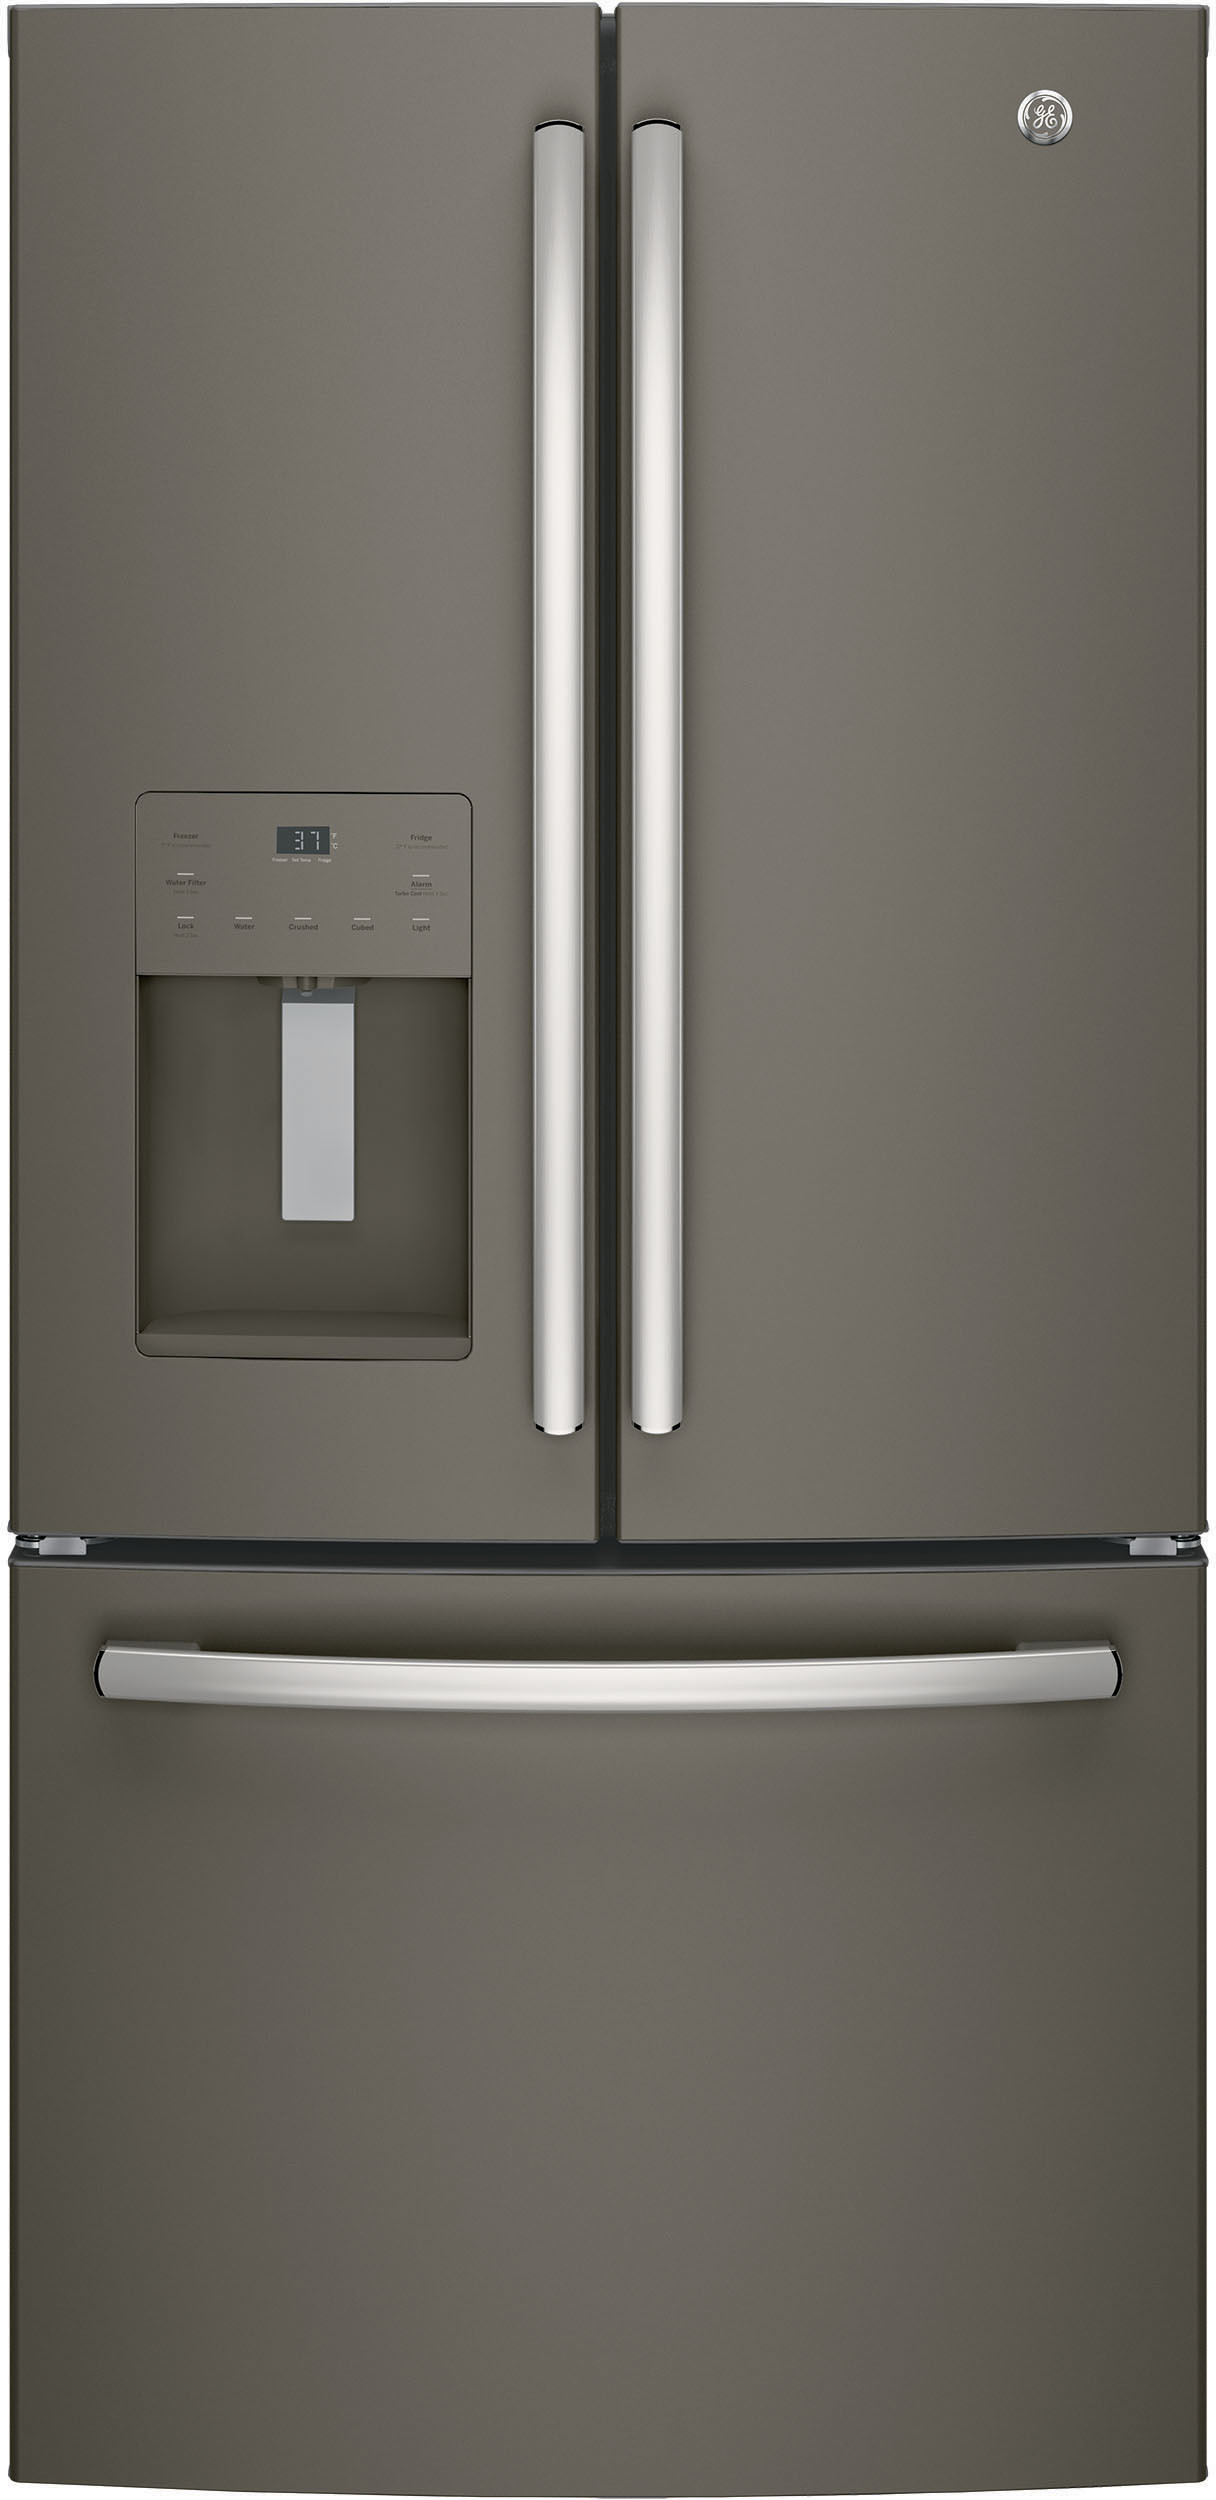 Ge Gfe24jmkes 33 Inch French Door Refrigerator With Turbo